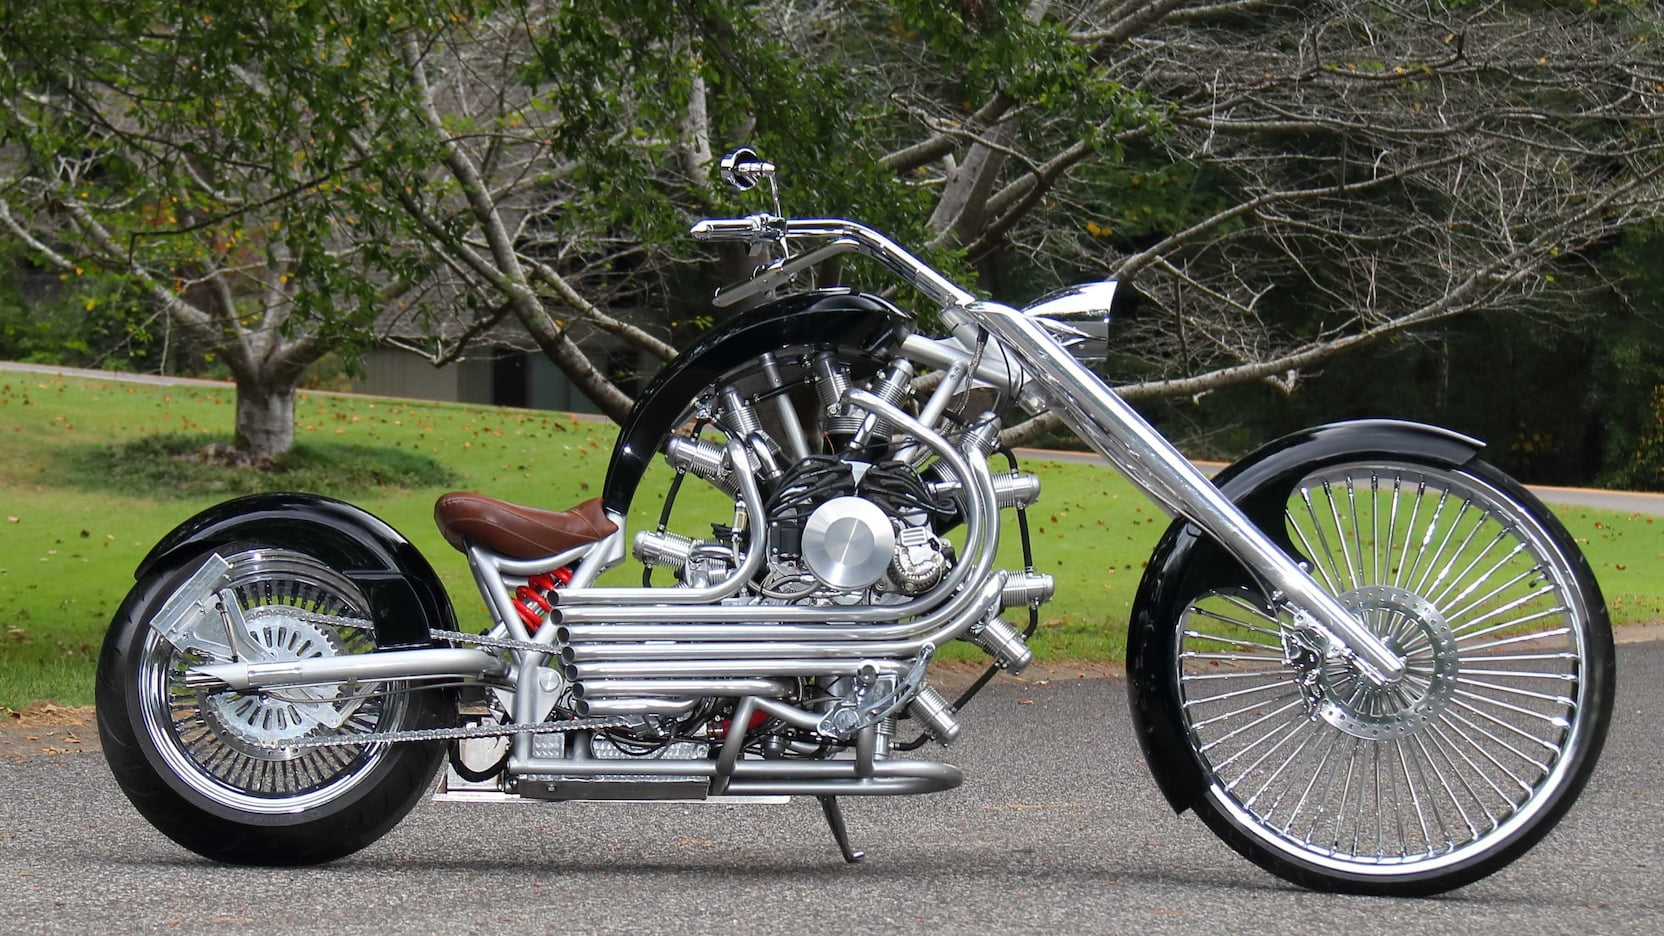 JRL Lucky 7 motorcycle 2